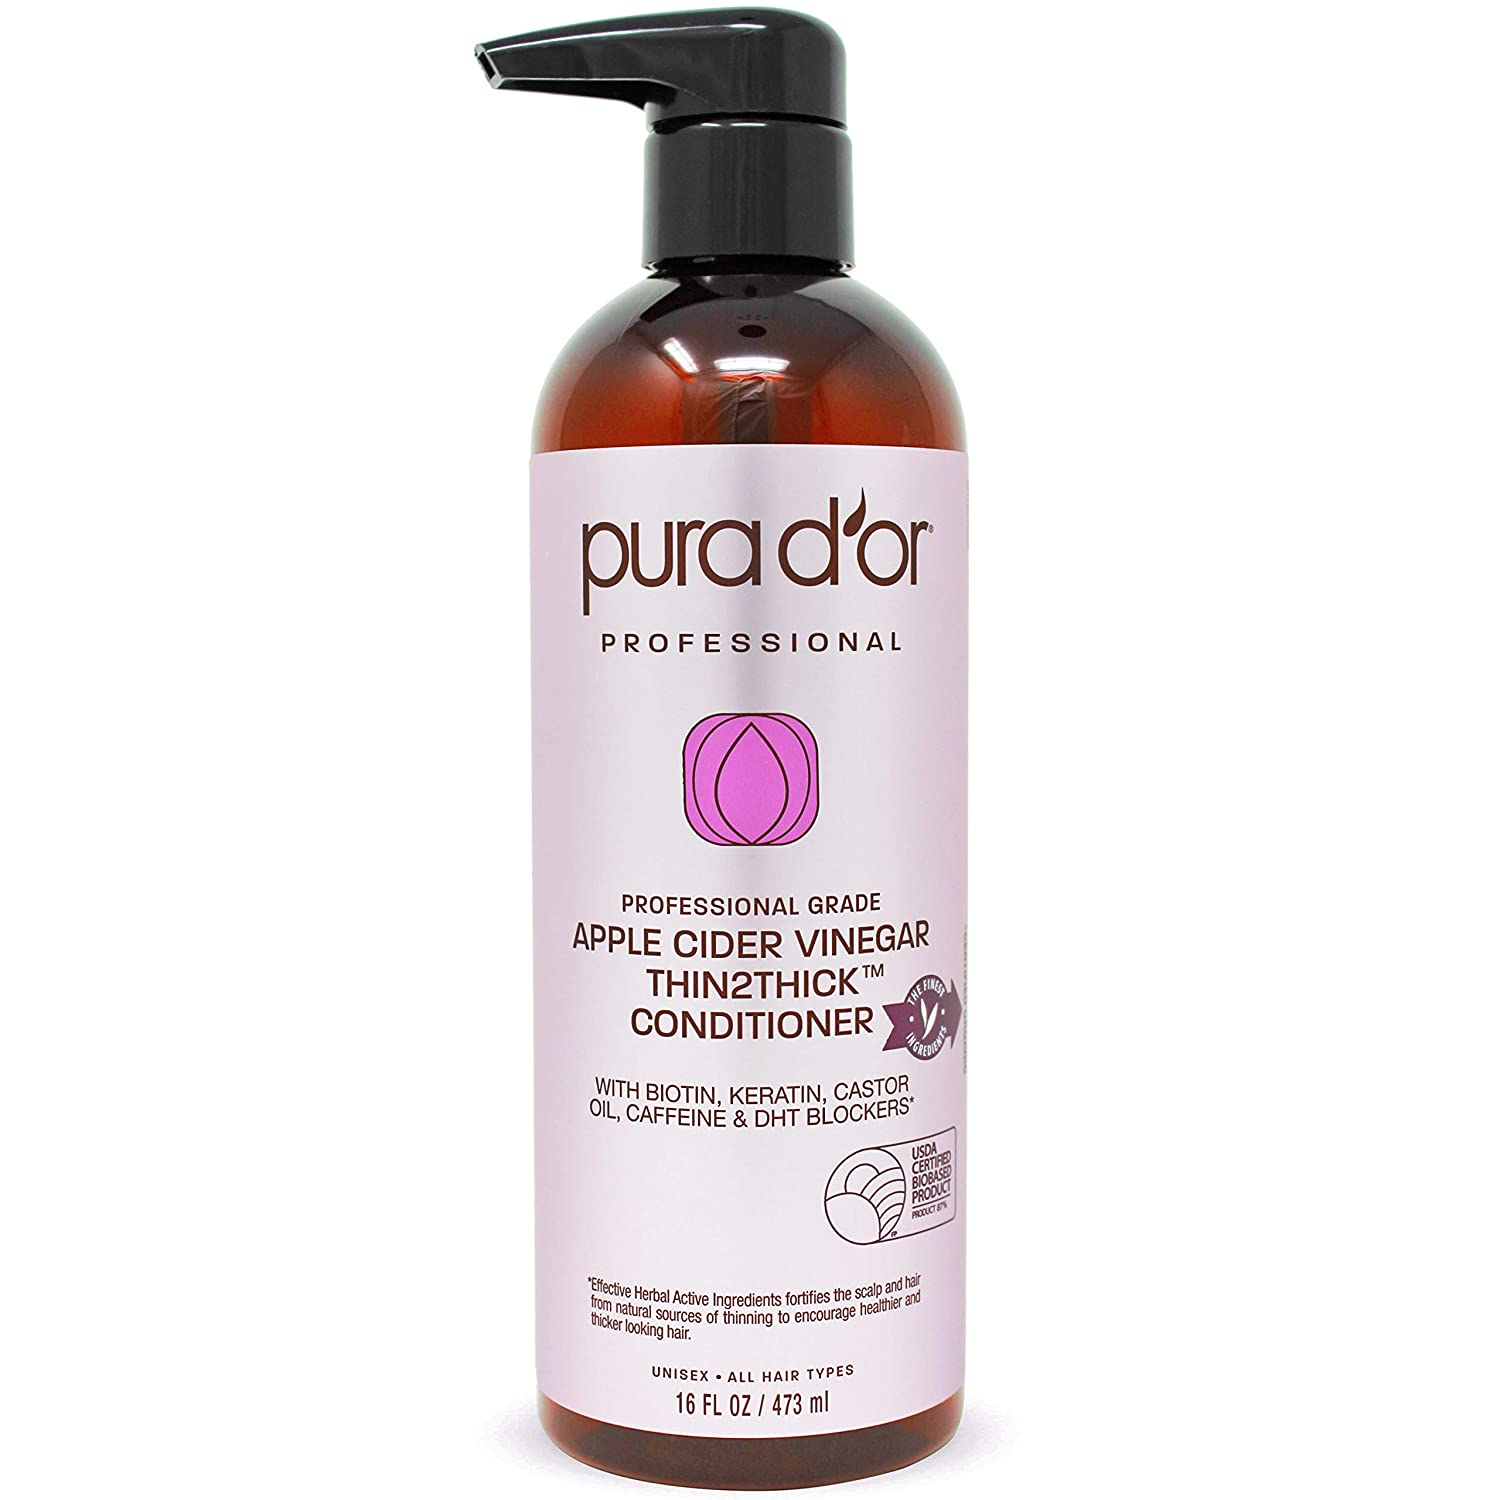 PURA D'OR Apple Cider Vinegar Thin2Thick Conditioner - With Biotin, Keratin, Caffeine, Castor Oil & Key Active Ingredients - For All Hair Types, Men and Women, 16 Fl Oz